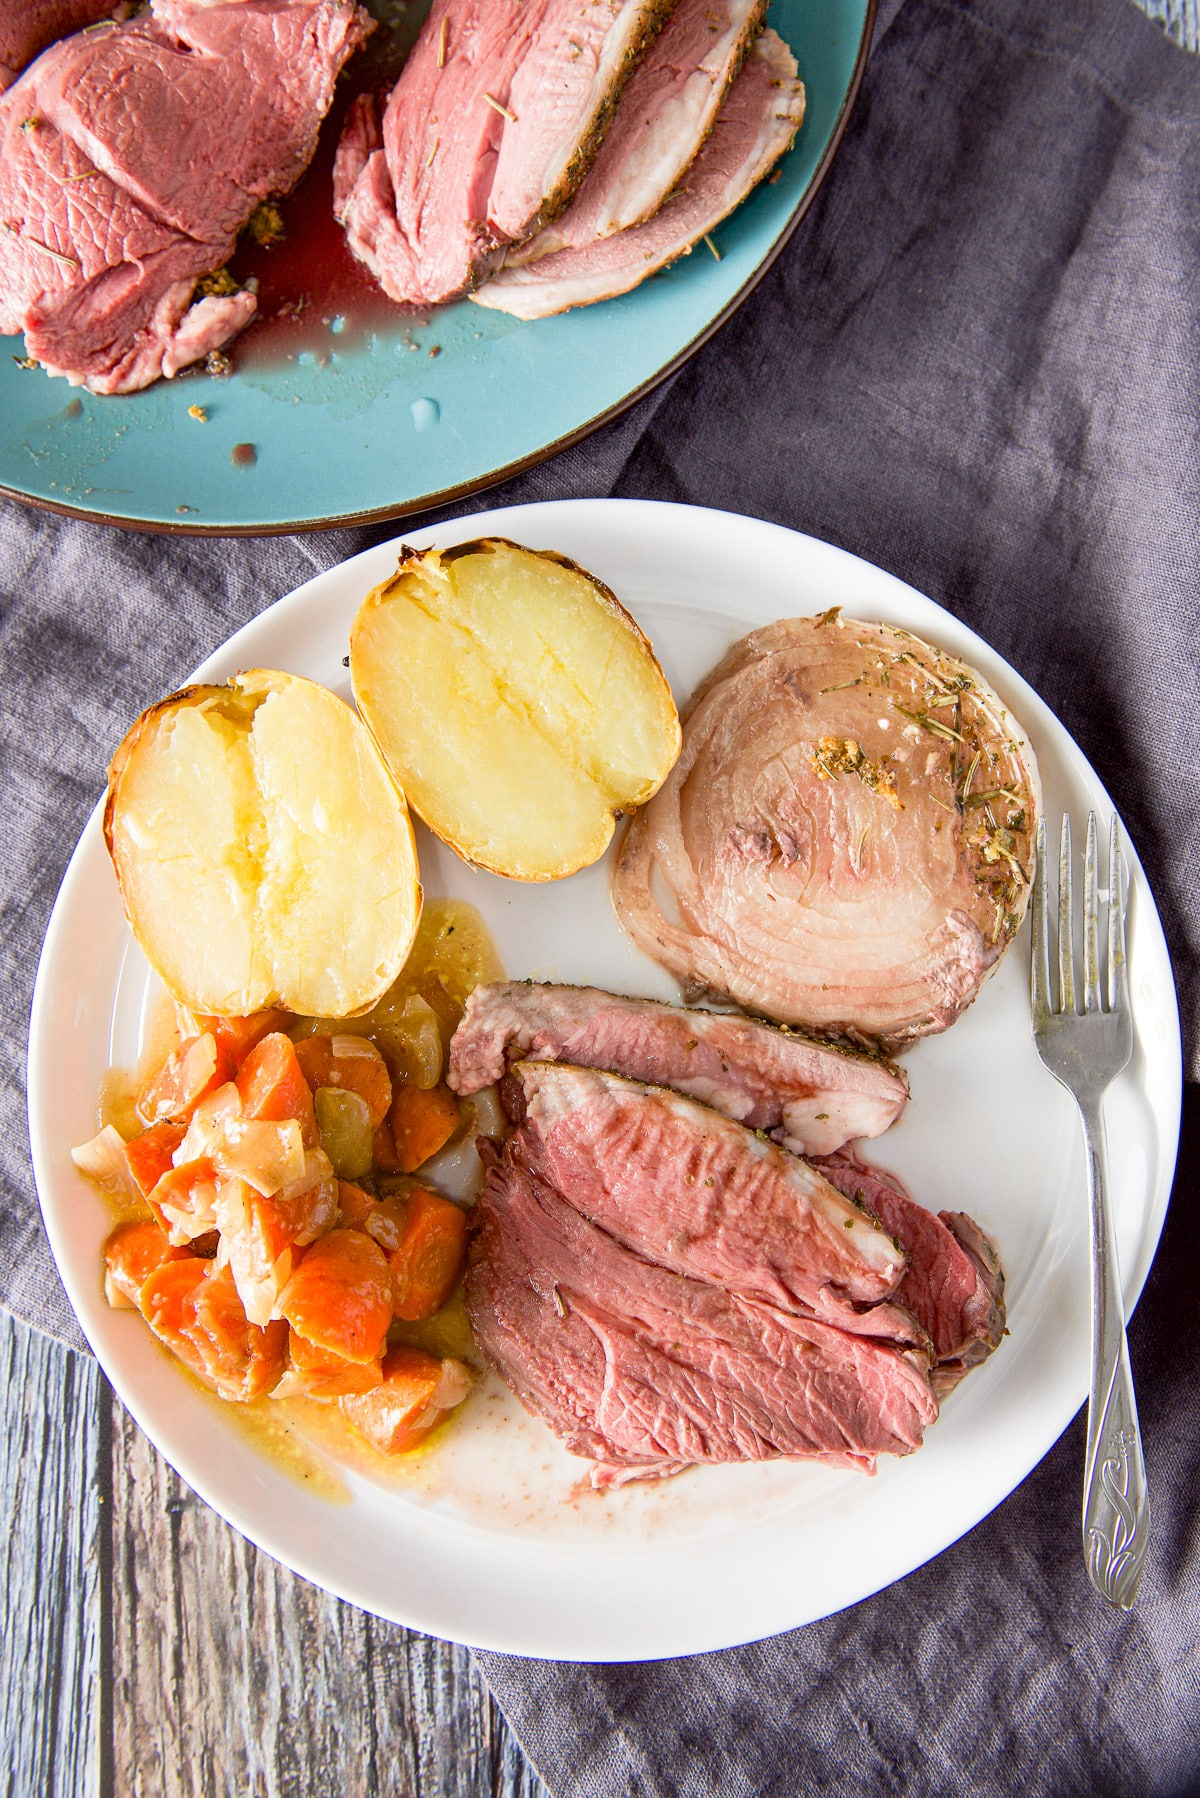 Overhead view of a white plate with a few slices of lamb, carrots, baked potato and onion